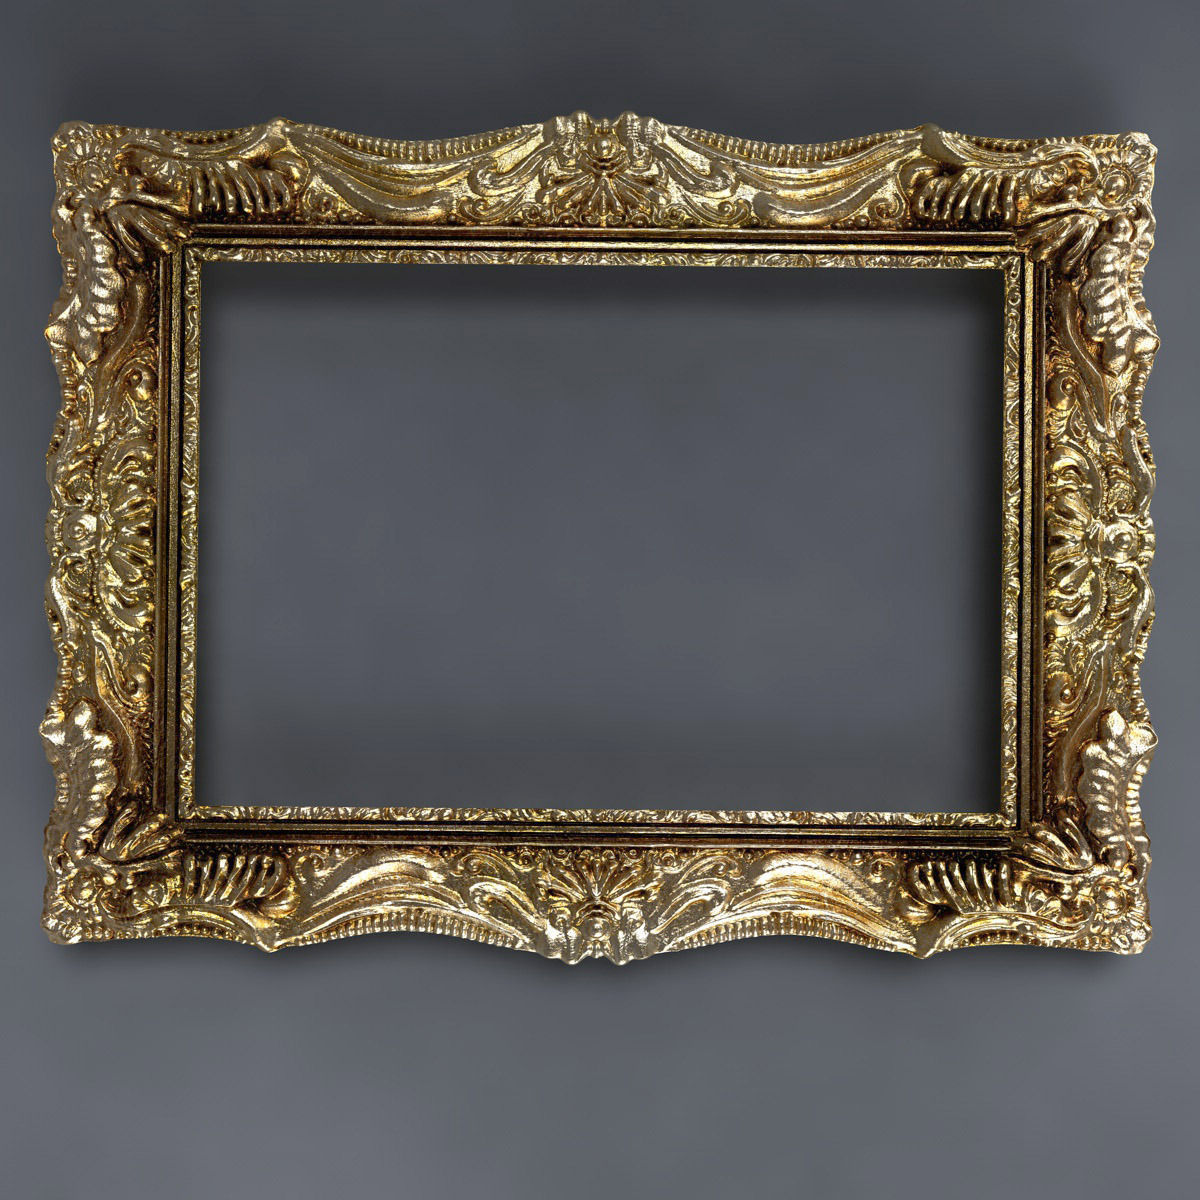 06a3733bd5a Photo Frame 3d Models - Picture Frame Ideas